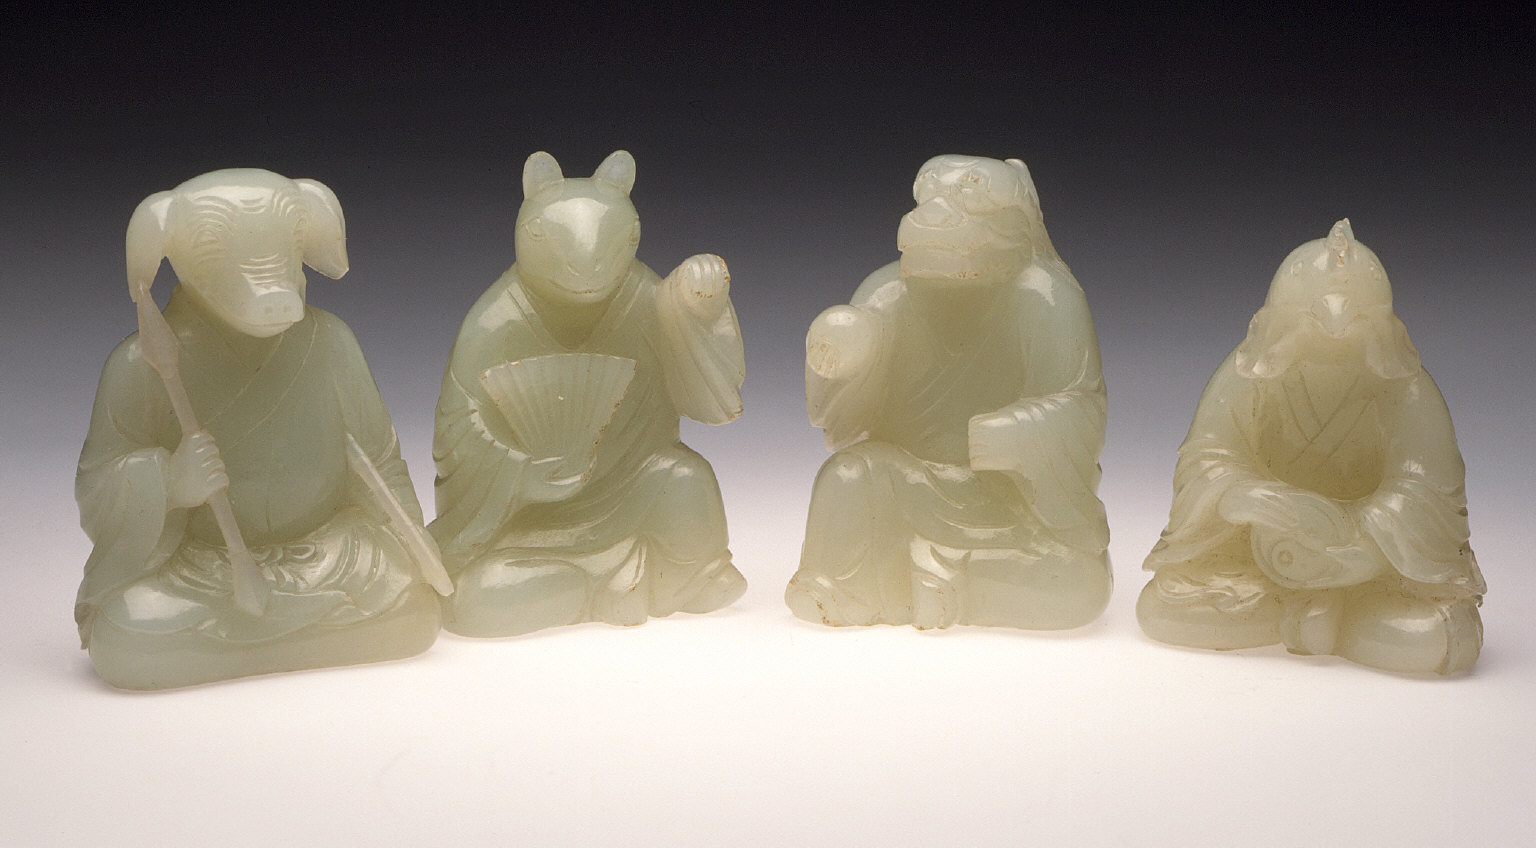 Hare, Dragon, Rooster, and Boar from the Animals of the Twelve-Year Chinese Zodiac (Shengxiao)